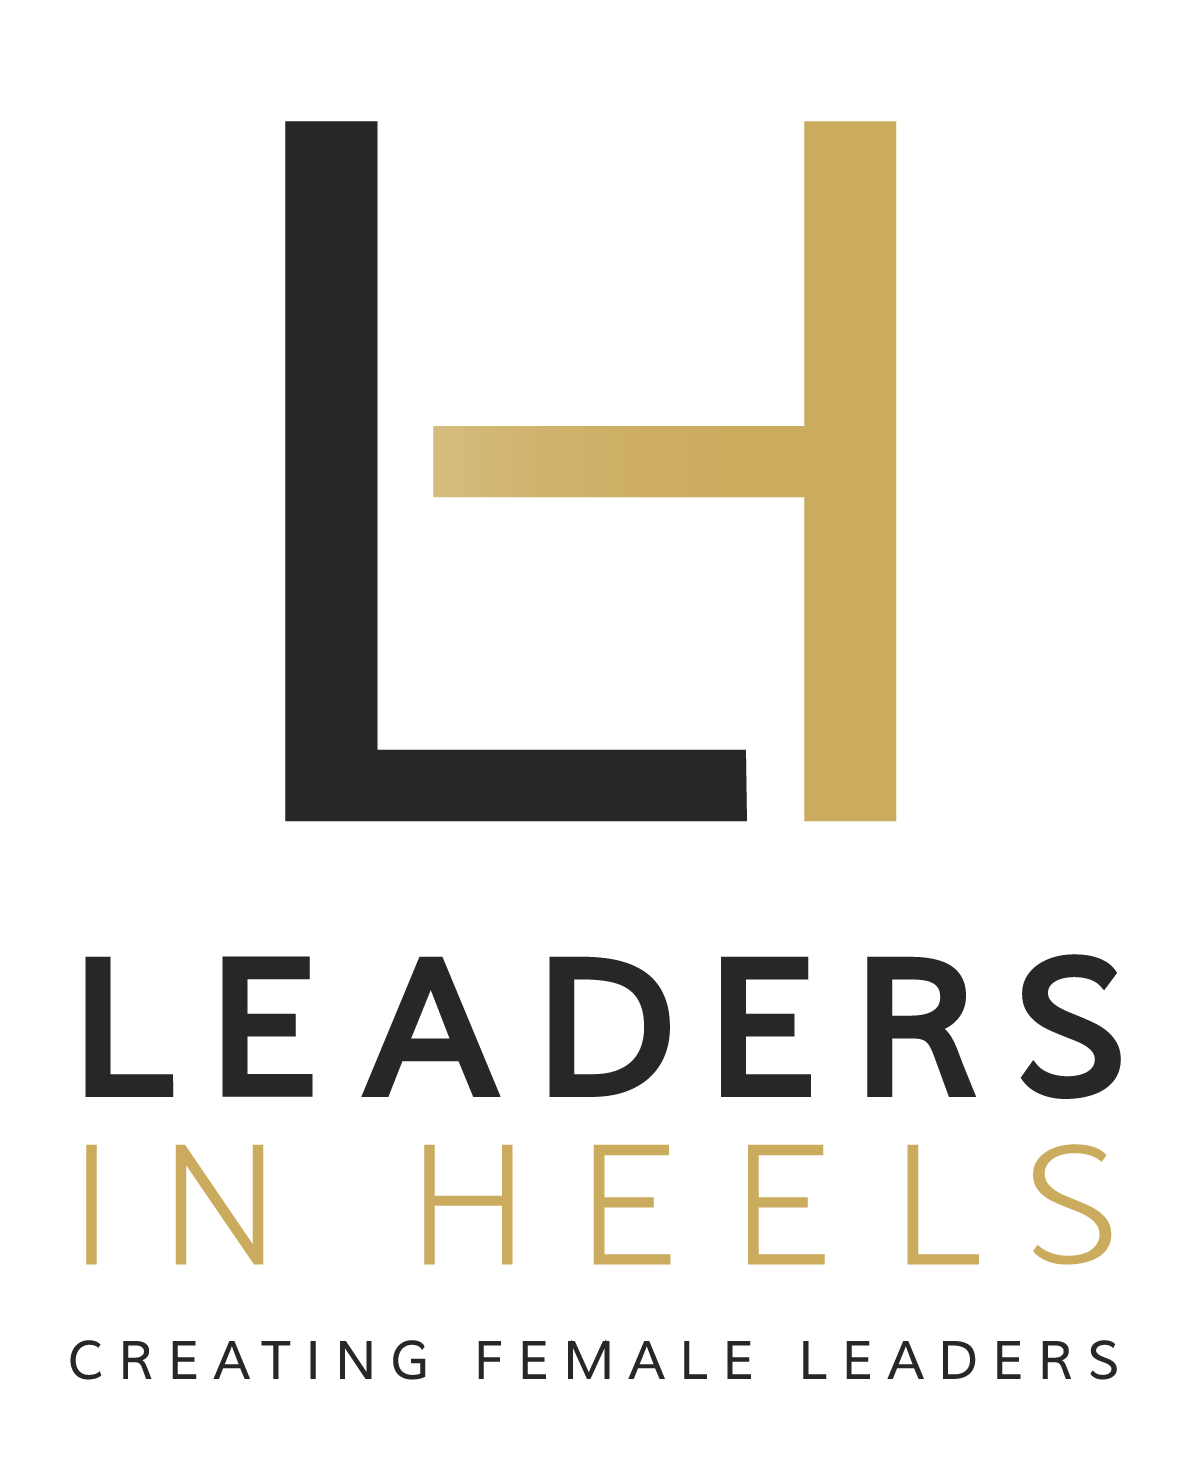 Leaders in Heels logo